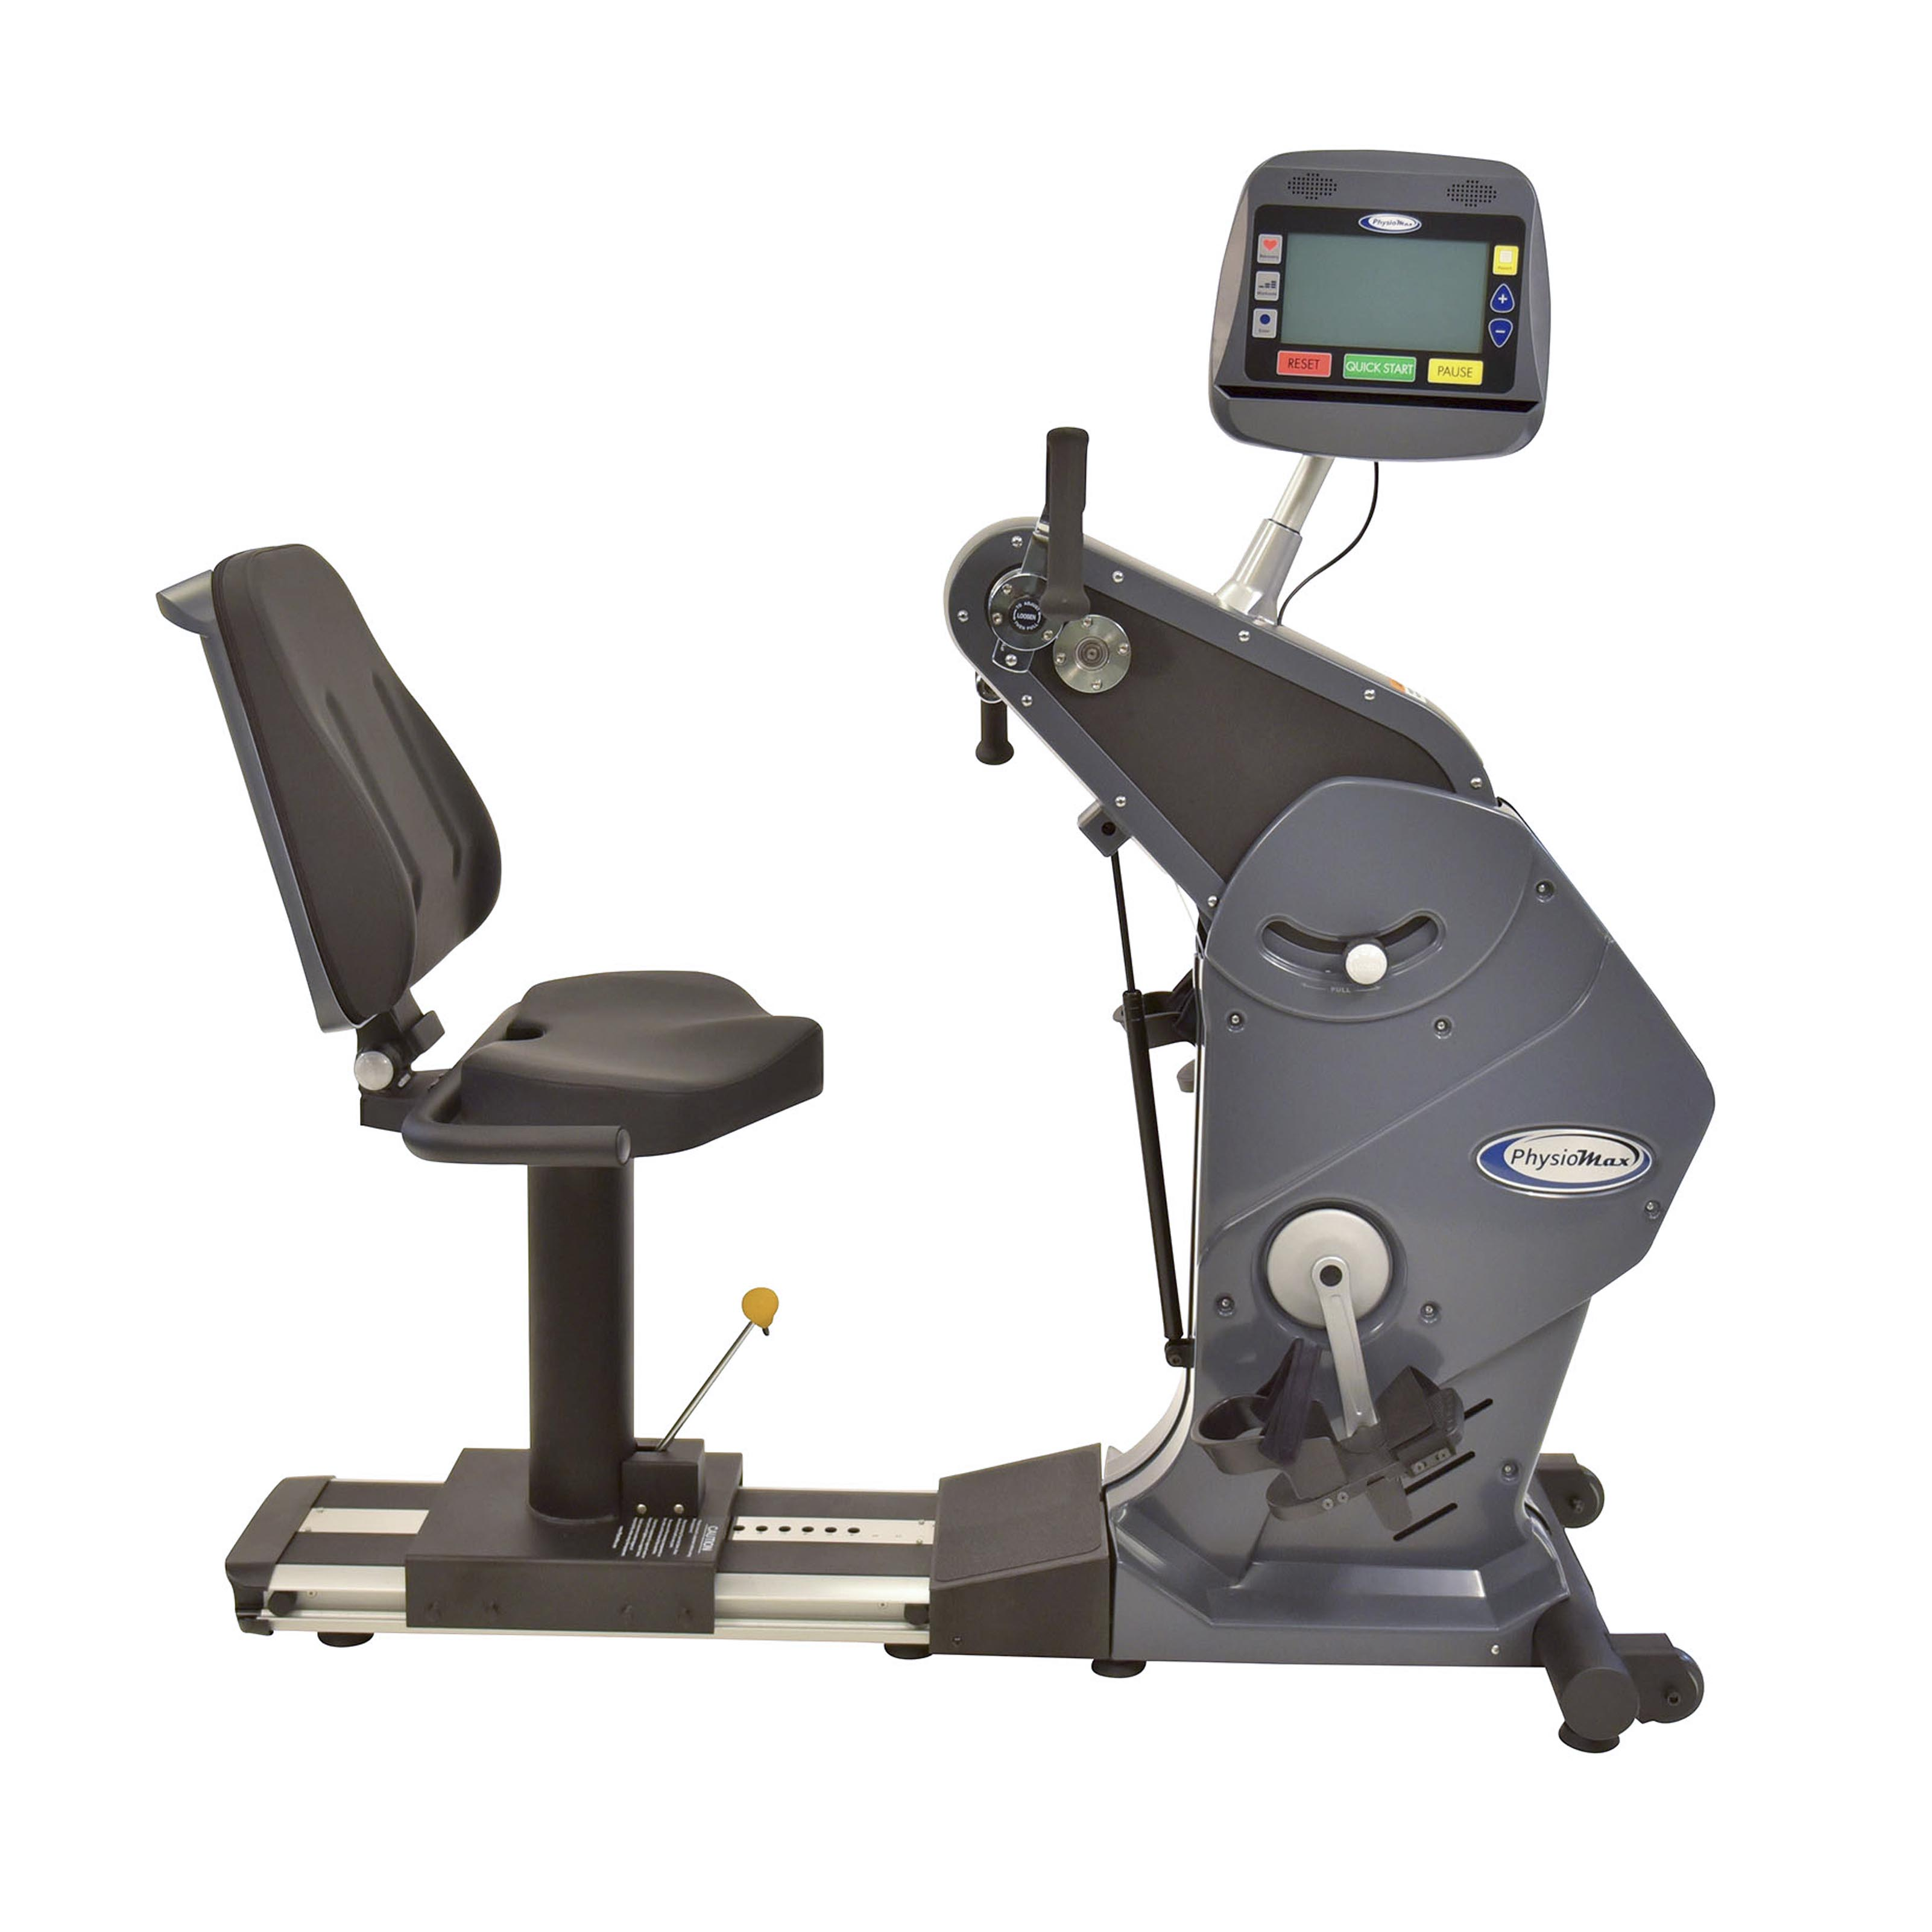 PhysioMax Side